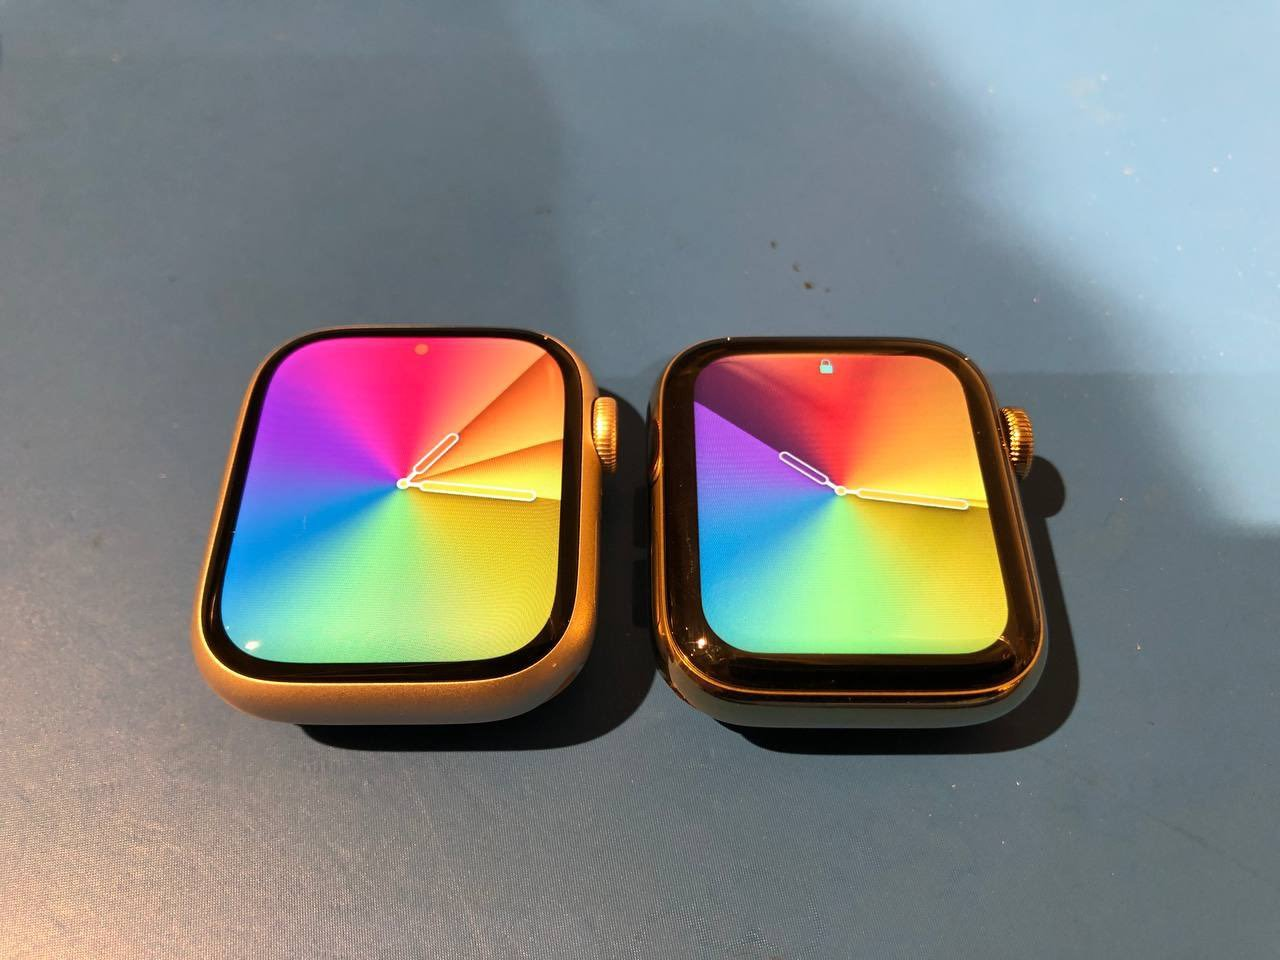 New Image Offers Clearer Look at Apple Watch Series 7 Screen Size Compared to Series 6